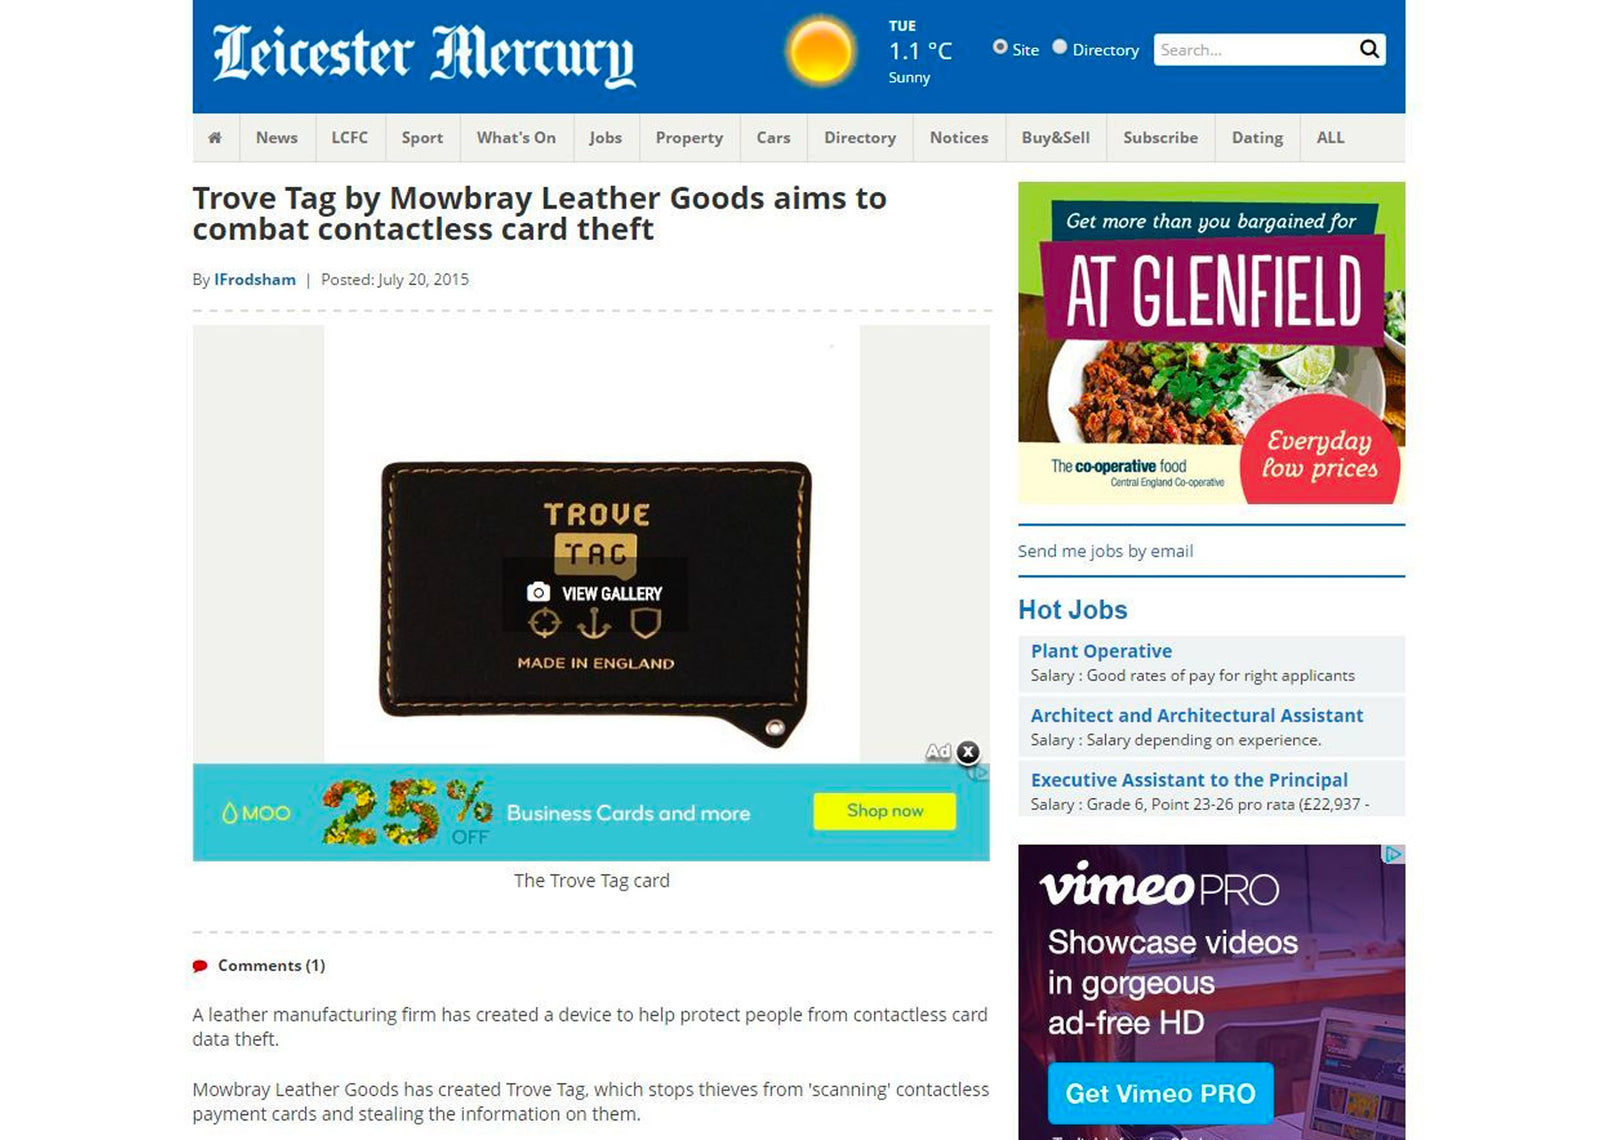 Review by Leicester Mercury